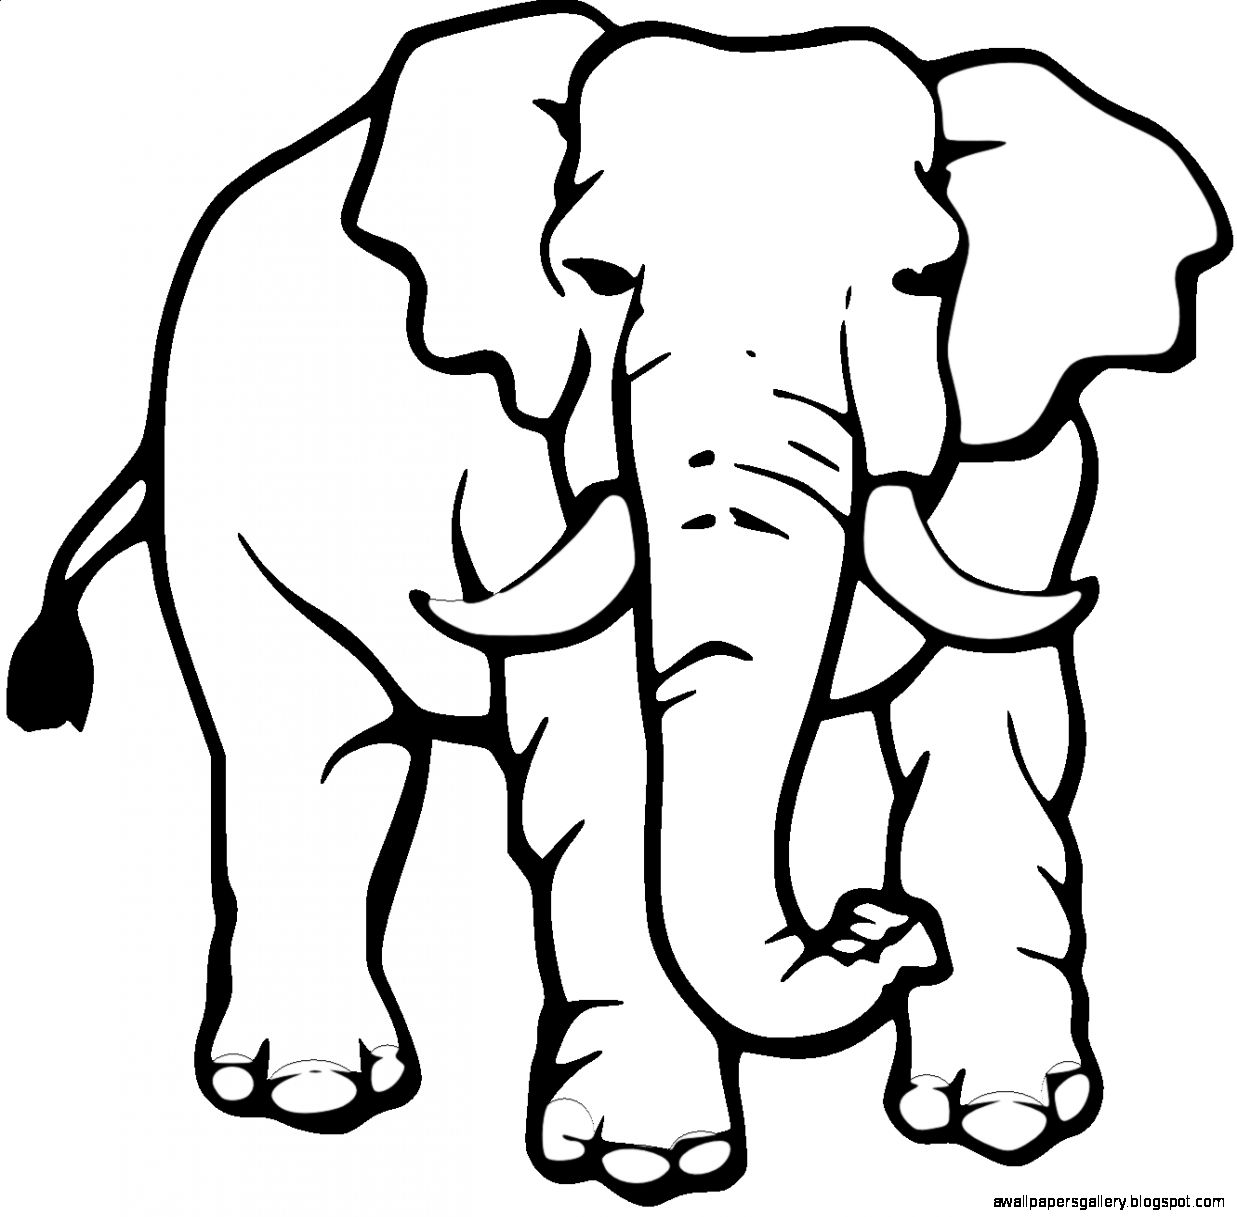 Arabian elephant clipart png transparent stock Elephant Clipart Black And White | Wallpapers Gallery png transparent stock